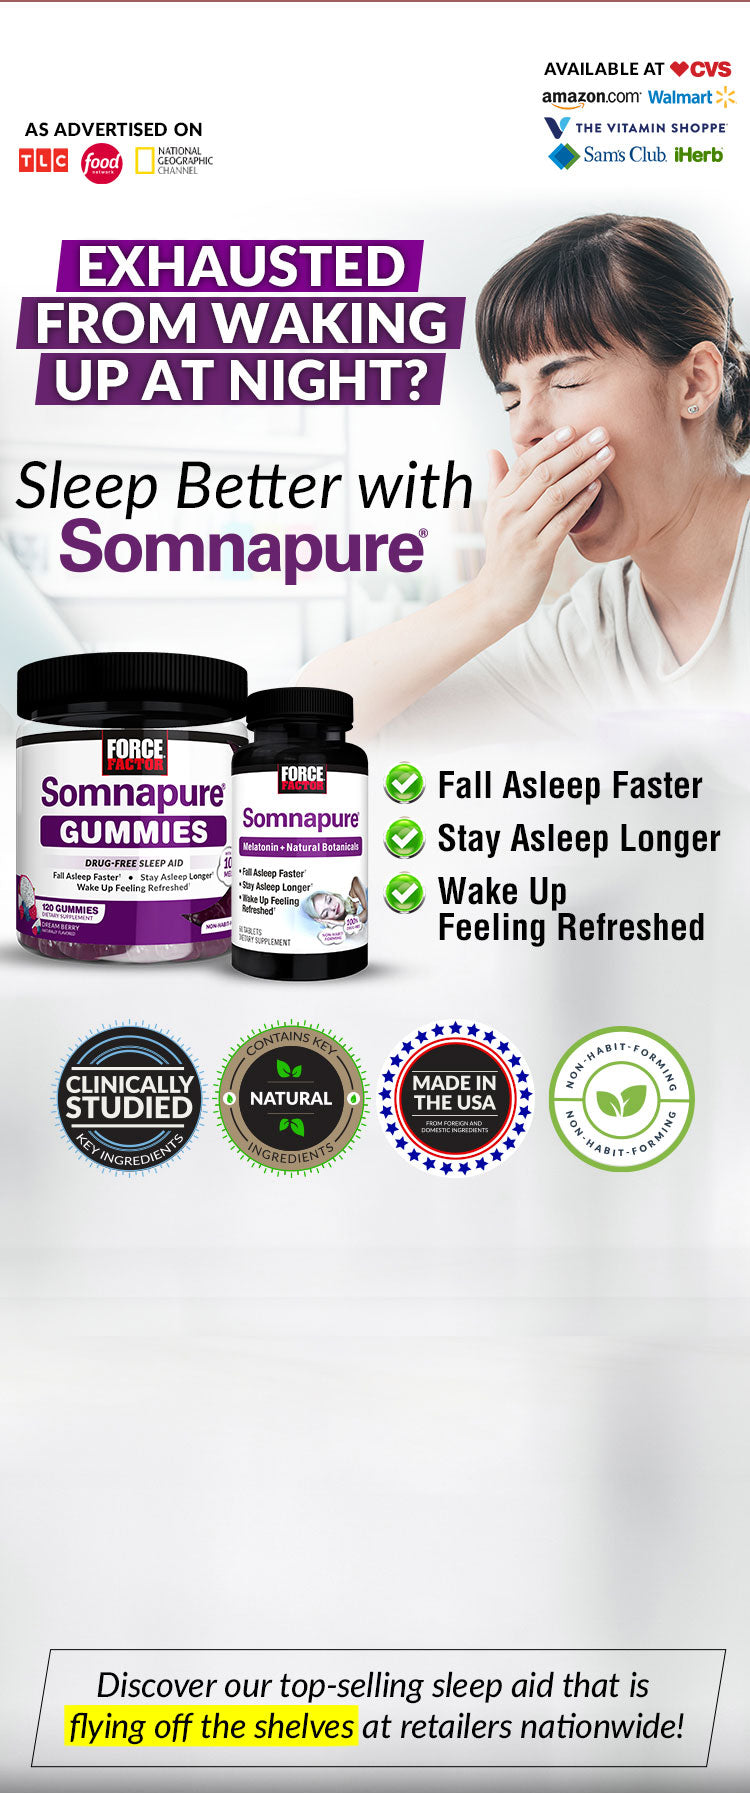 EXHAUSTED FROM WAKING UP AT NIGHT? Sleep Better with Somnapure®. Fall Asleep Longer, Stay Asleep Longer, Wake Up Feeling Refreshed. Discover our top-selling sleep aid that is flying off the shelves at retailers nationwide!